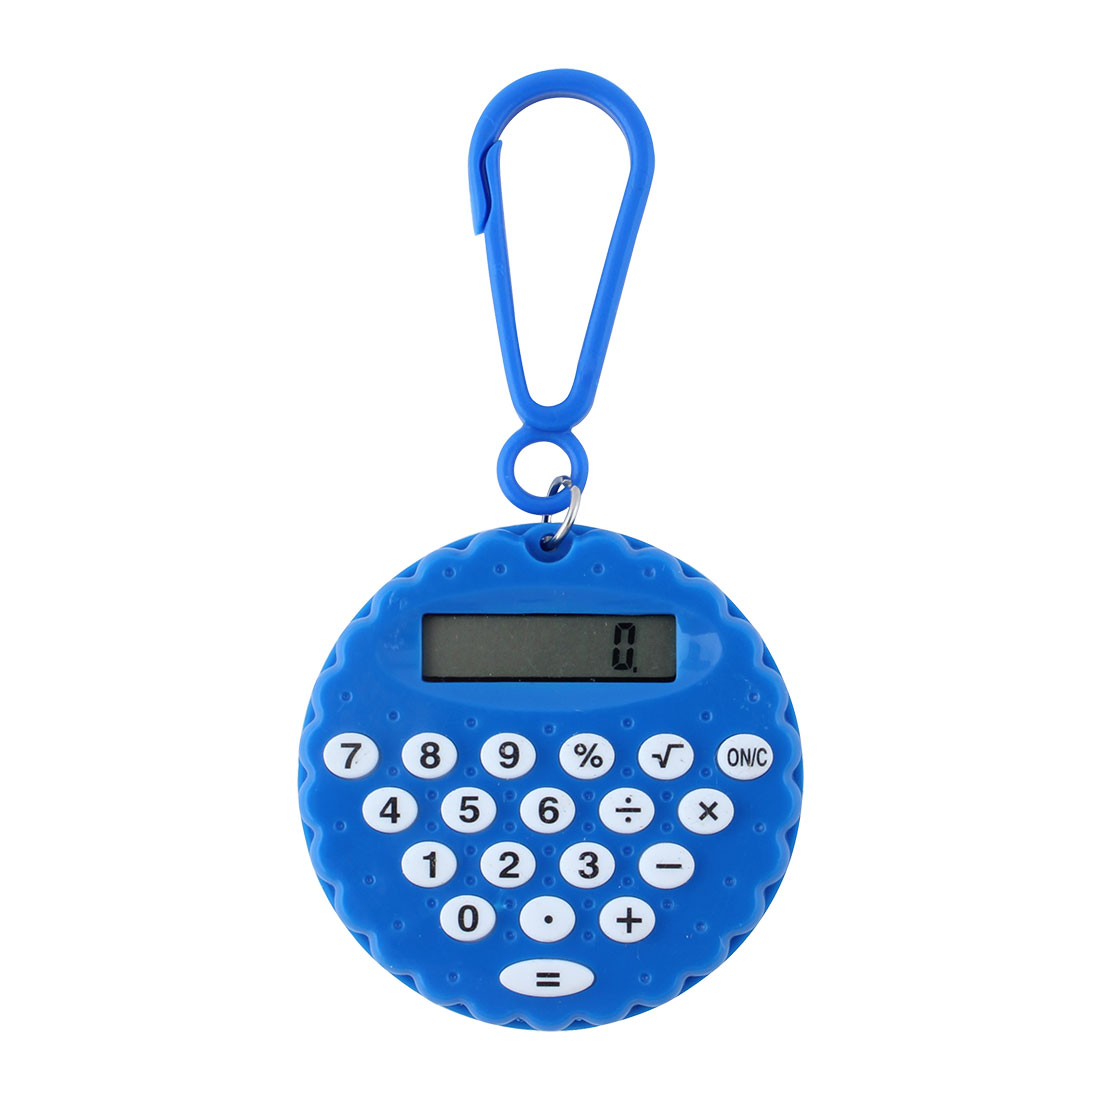 Plastic Biscuit Shaped Shell LCD Display 8-digit Pocket Portable Calculator Blue w Key Chain